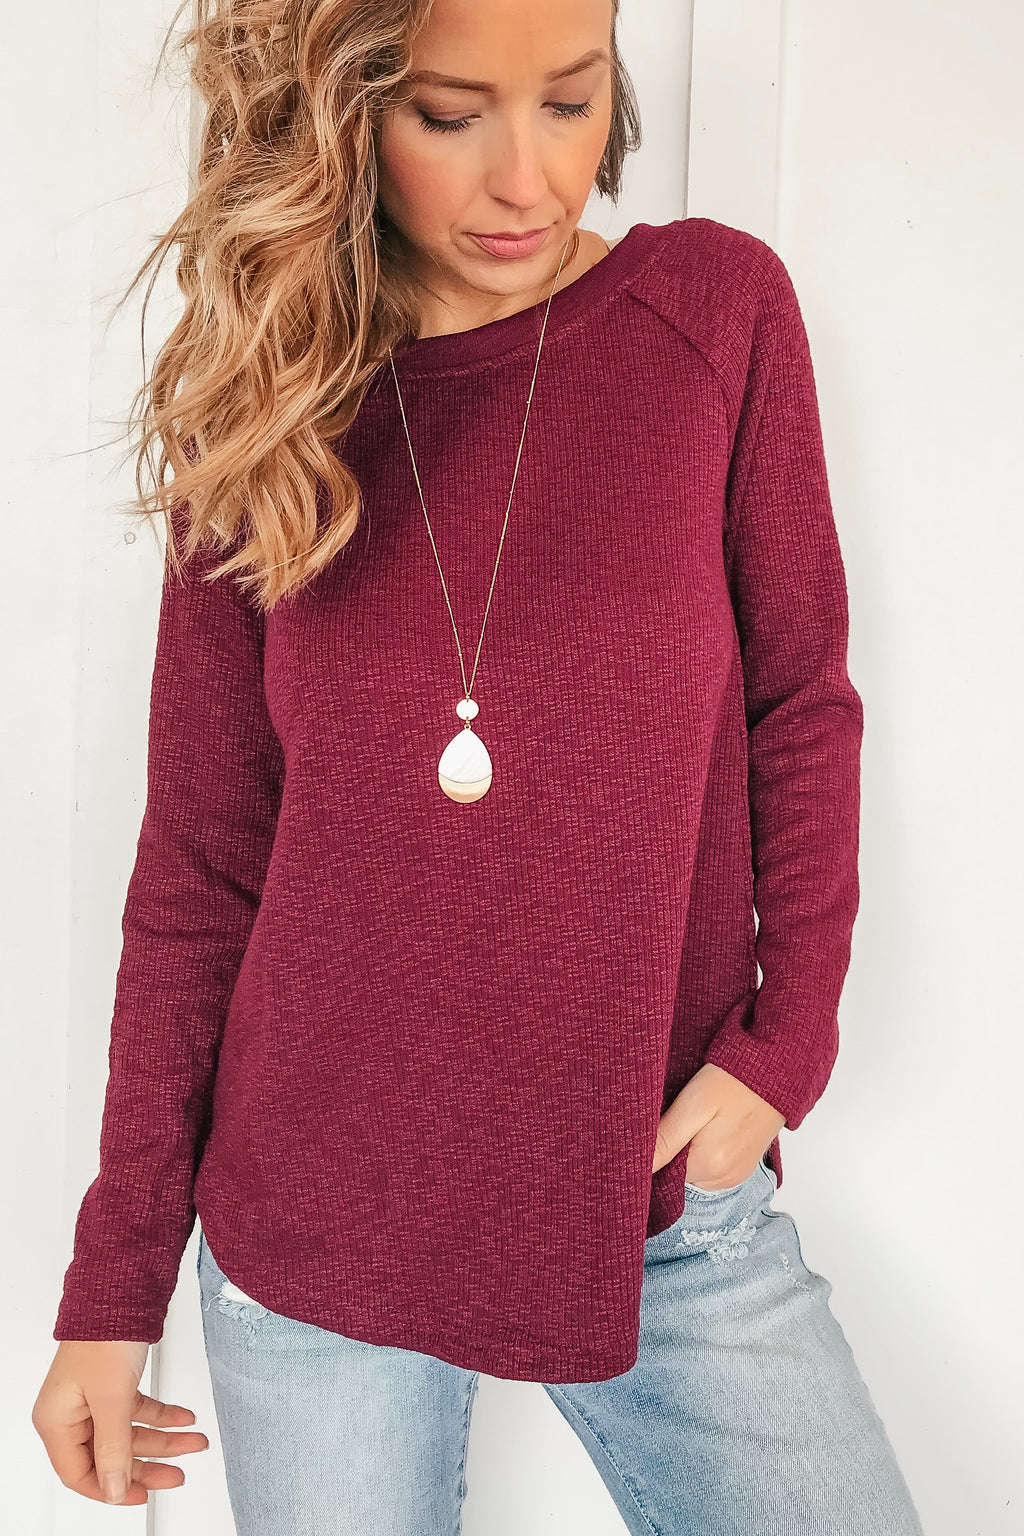 Crochet Back Burgundy Sweater